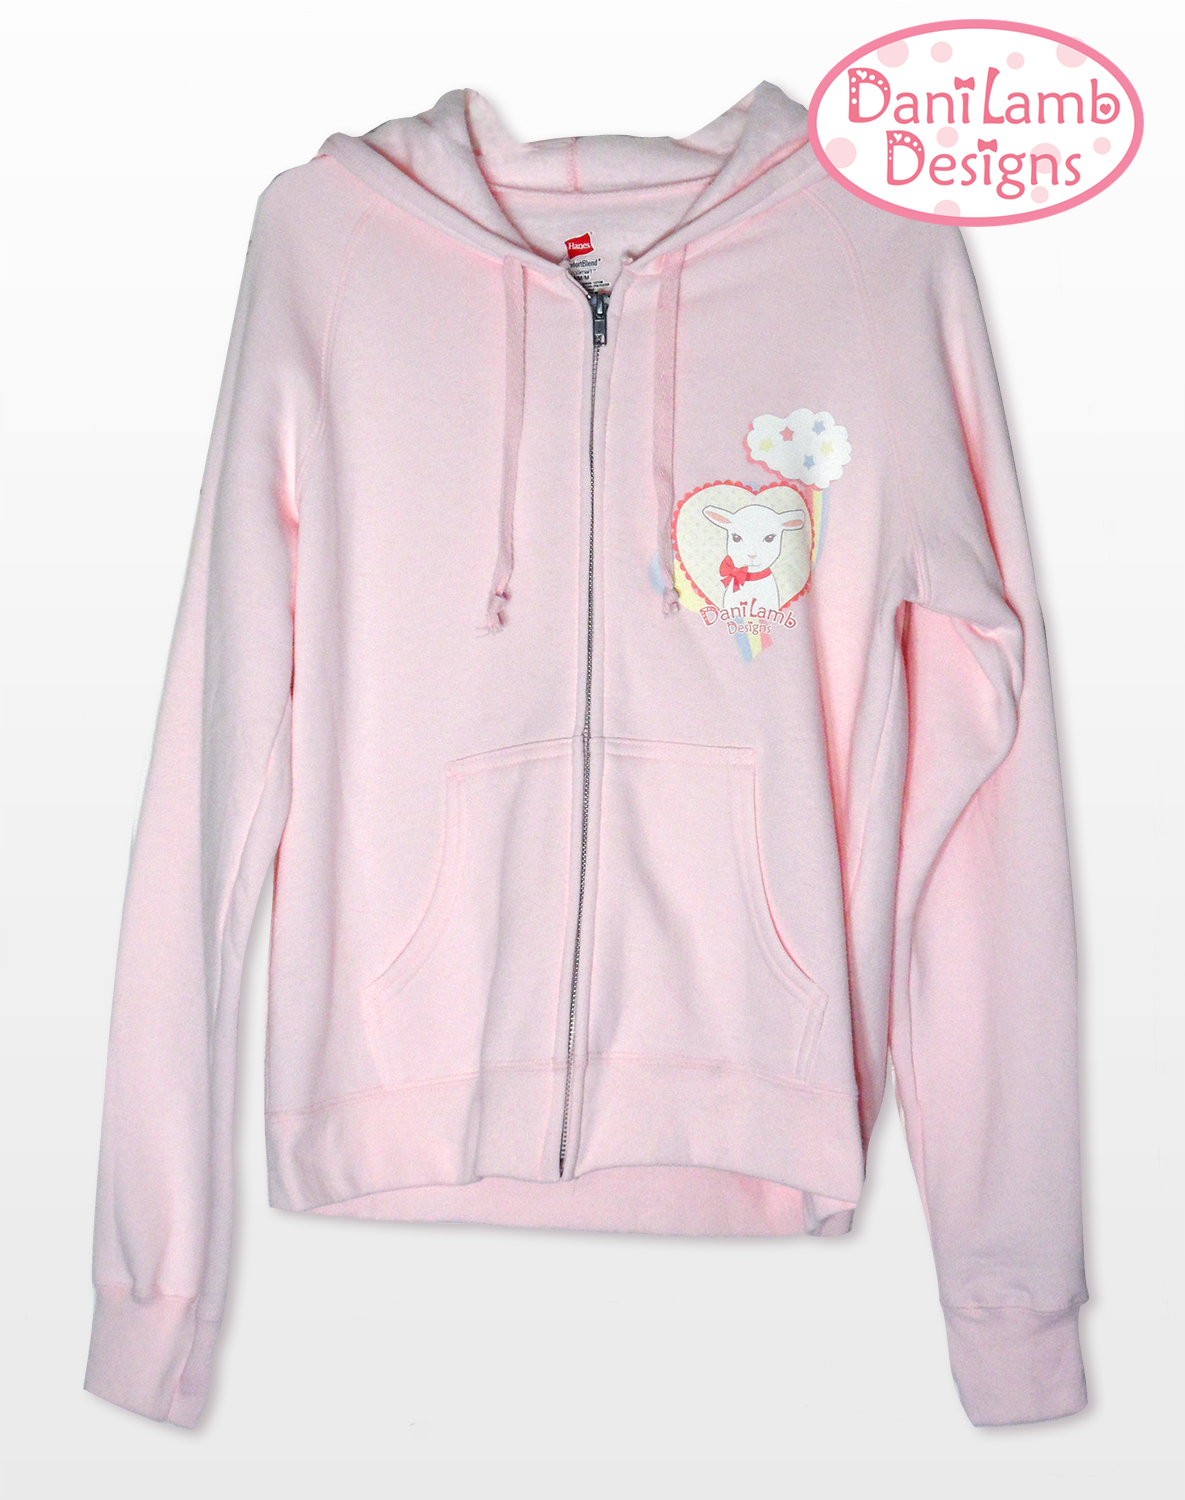 Kawaii Fairy Kei Pink Zip Up Jacket Pastel Rainbow Lamb Danilamb ...